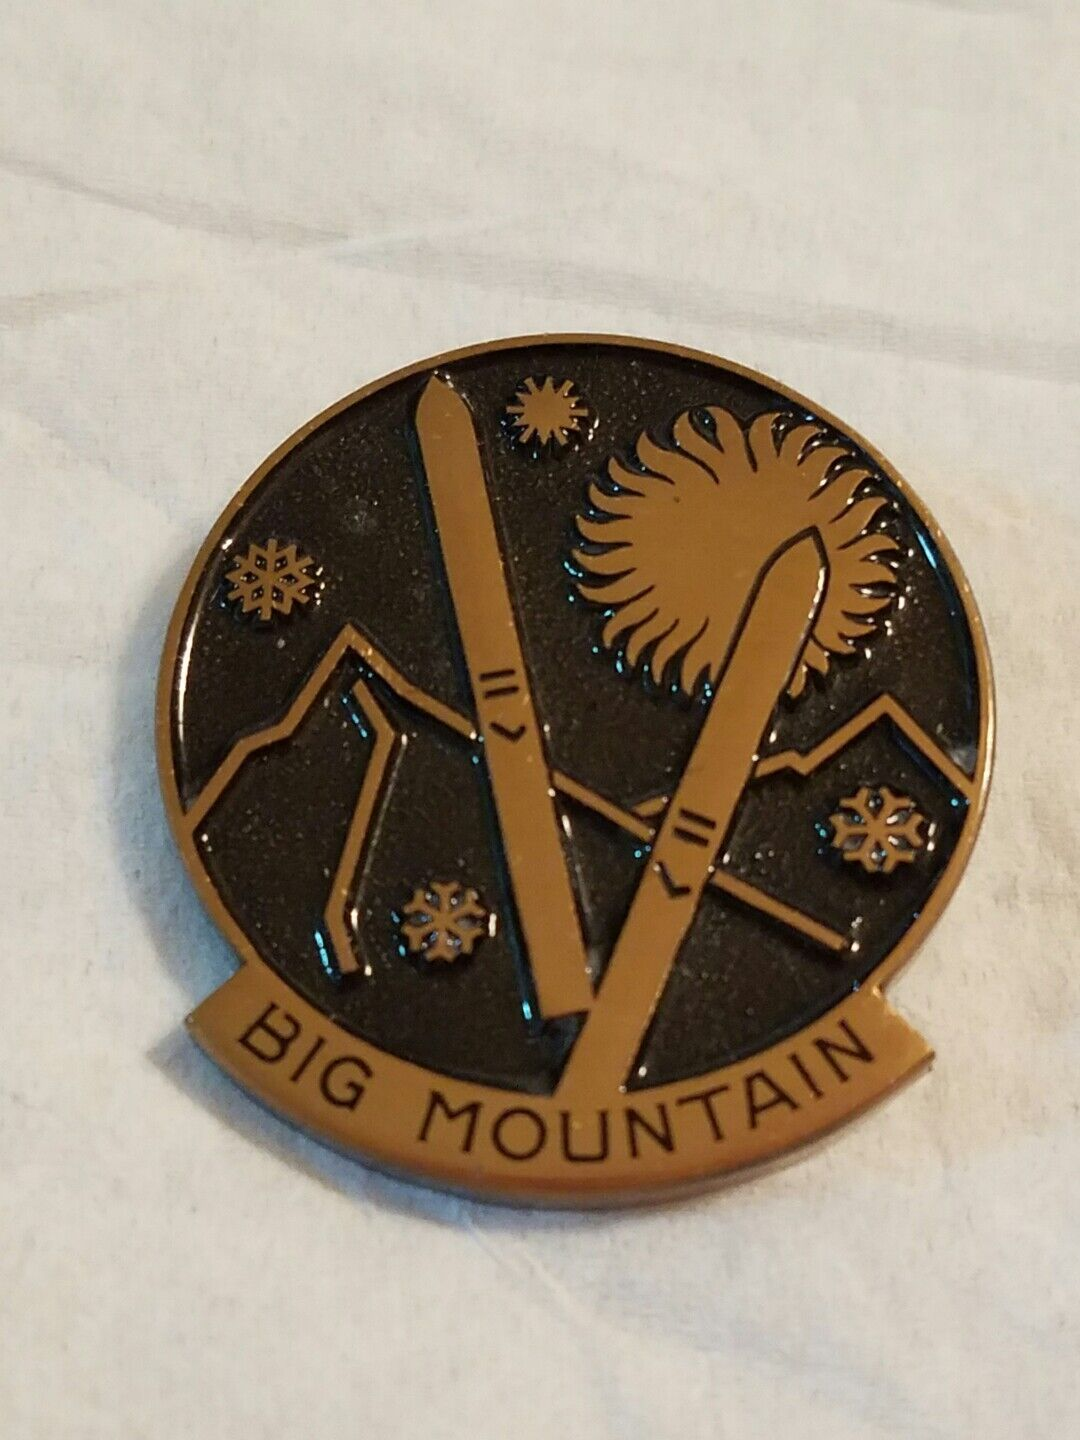 VINTAGE BIG MOUNTAIN MONTANA SKI PIN HUGUENIN SWITZERLAND        A  official website